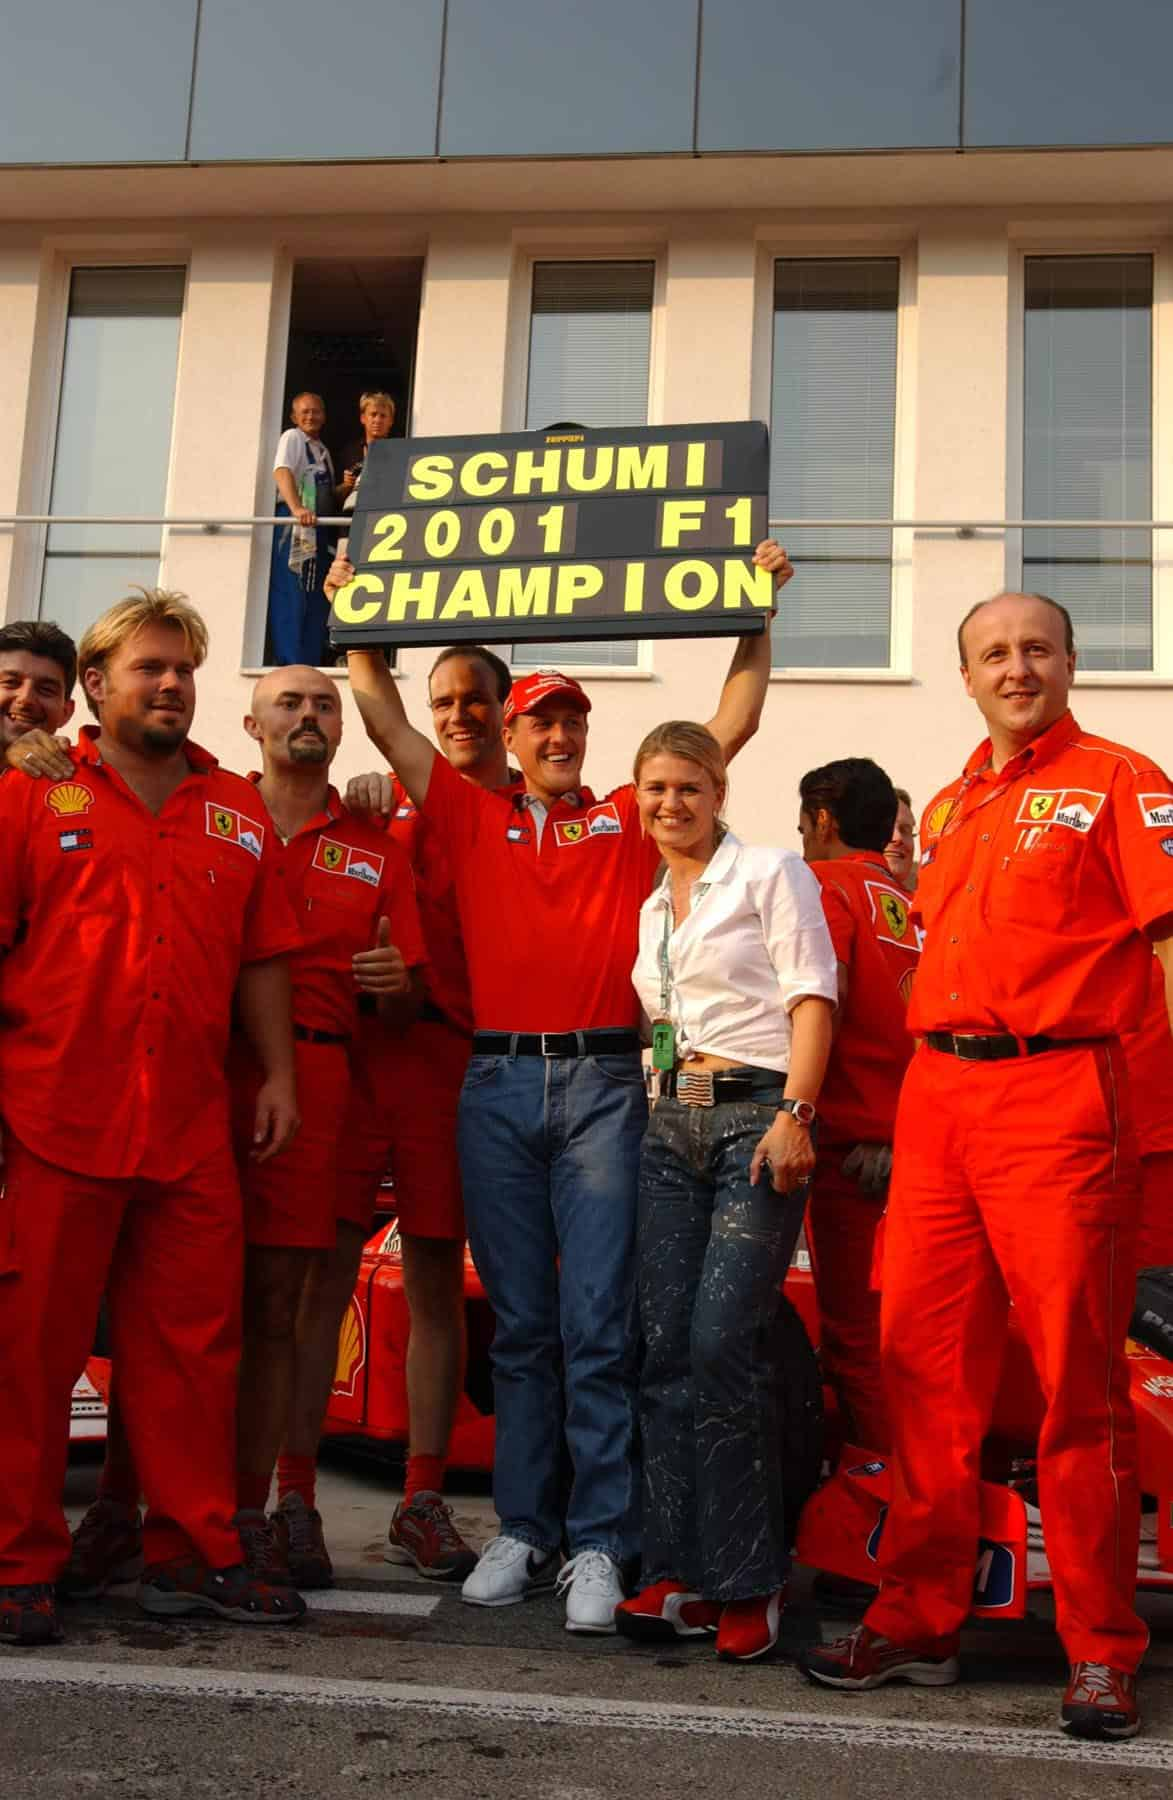 Michael Schumacher Ferrari F2001 fourth title Hungarian GP F1 2001 Photo Ferrari